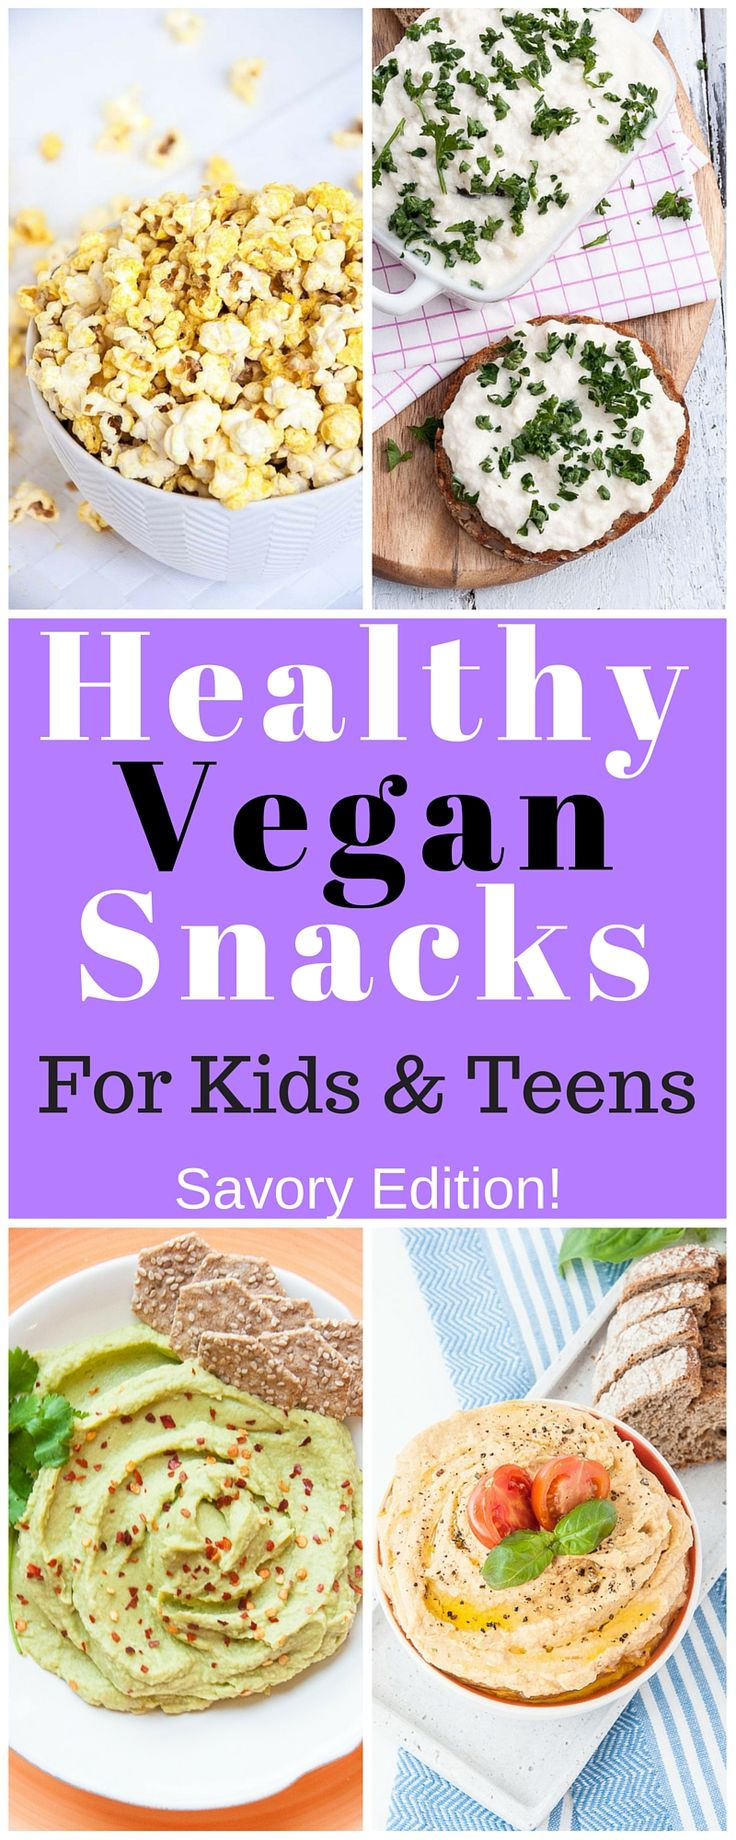 Healthy Vegan Snacks for Kids & Teens (and hungry adults!) Savory Edition- check out the sweet one too! | VeganFamilyRecipes.com | #snack #after school